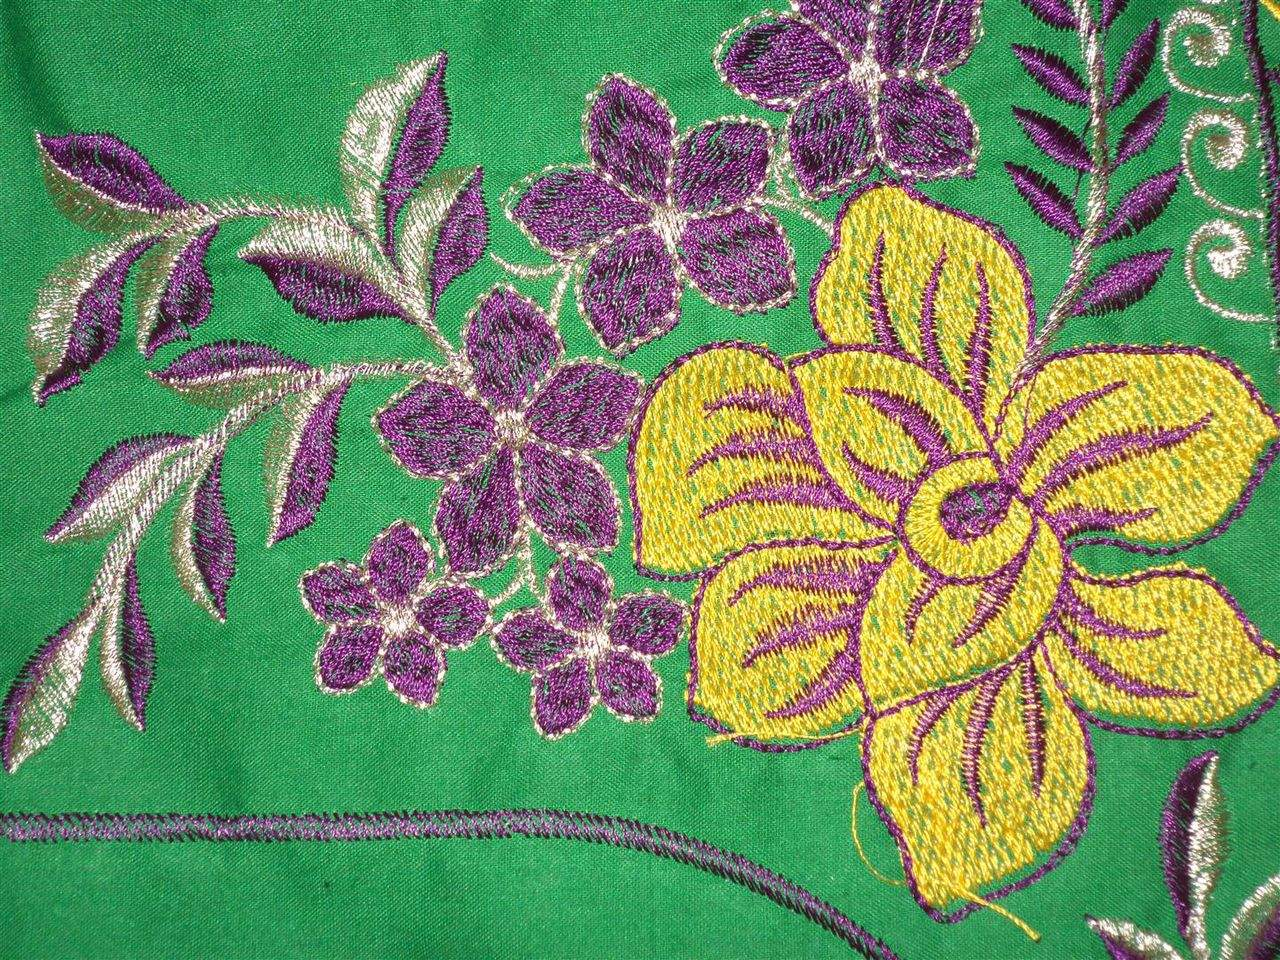 http://img.techshristi.com/images/embroideryshristi/dsc00885large.jpg height=135